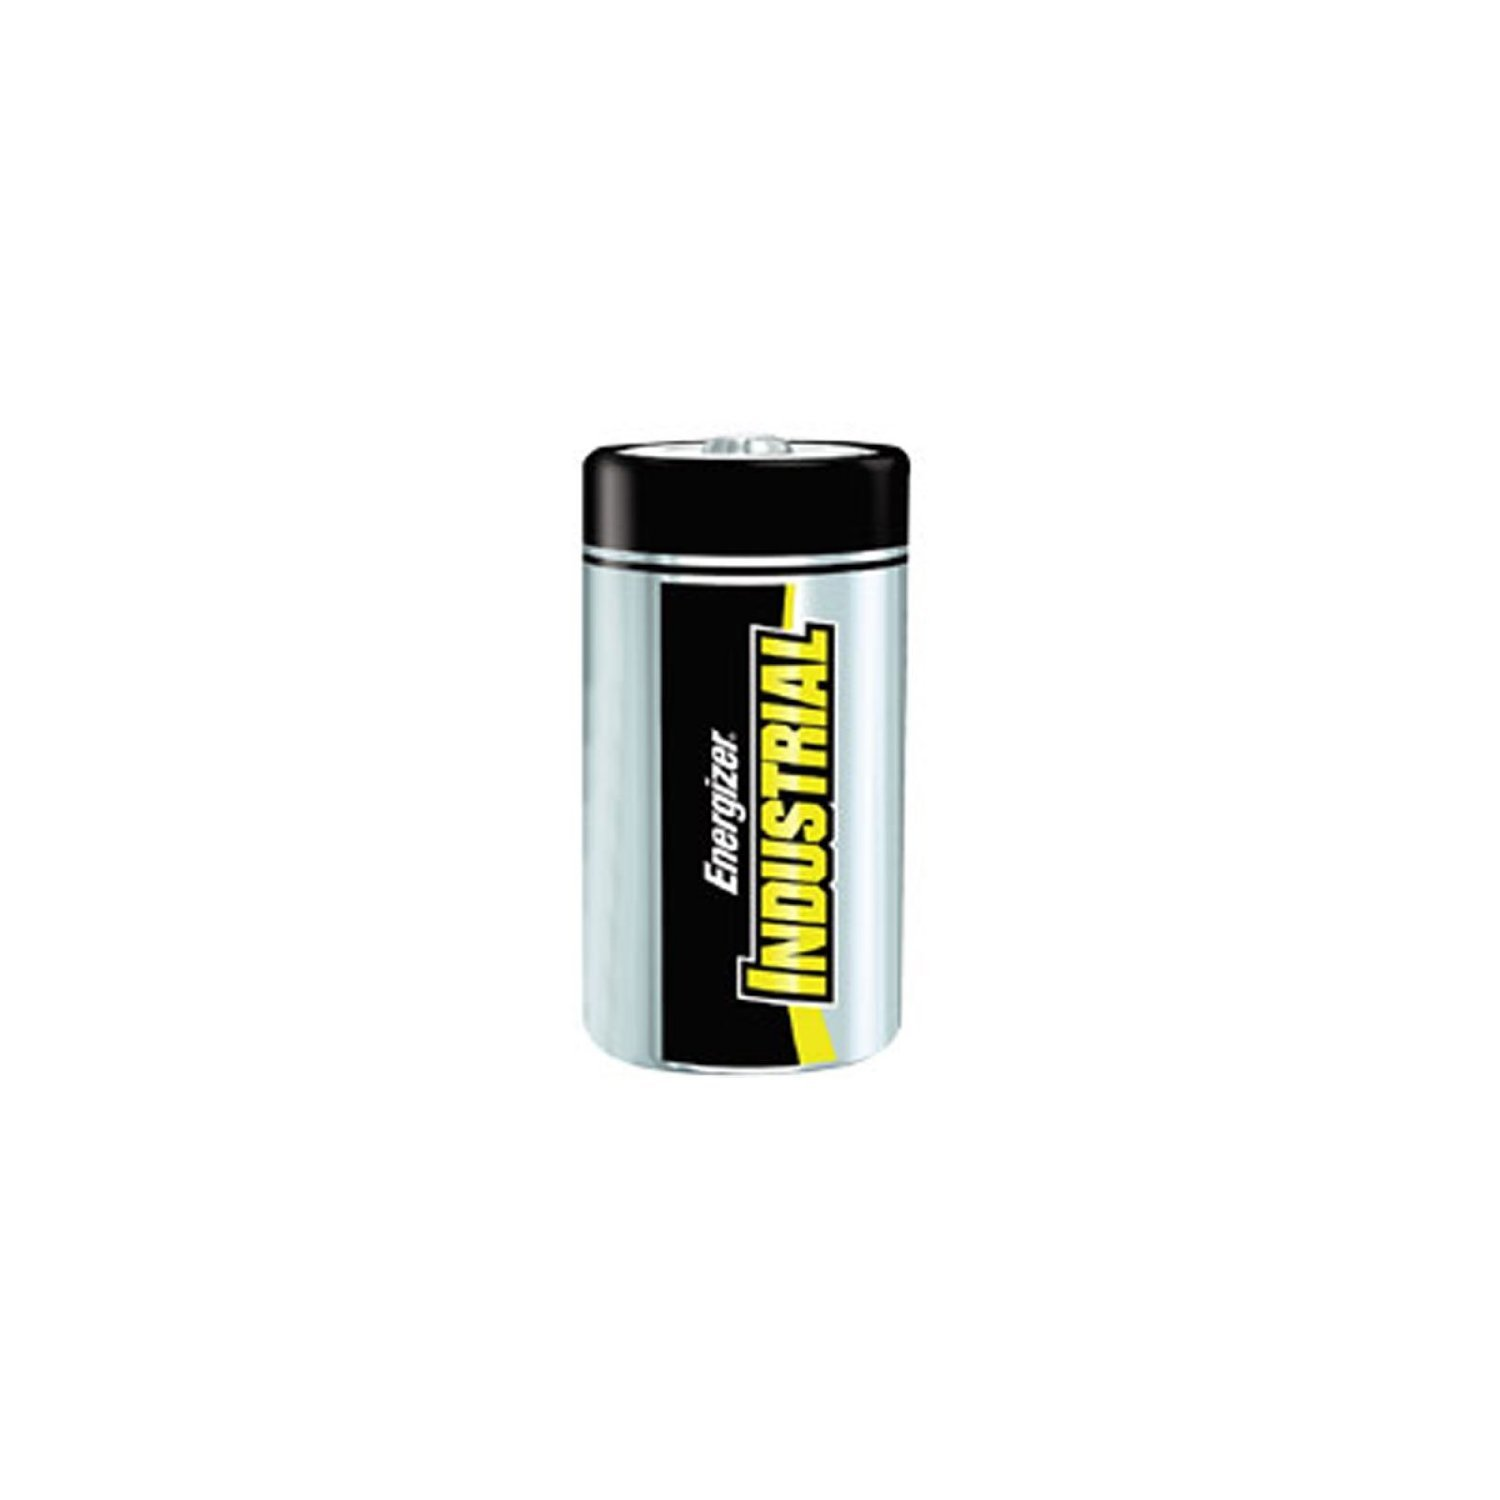 Pack of 60 Energizer Batteries EN95 D Size Industrial Alkaline Battery - Bulk Pack by Energizer